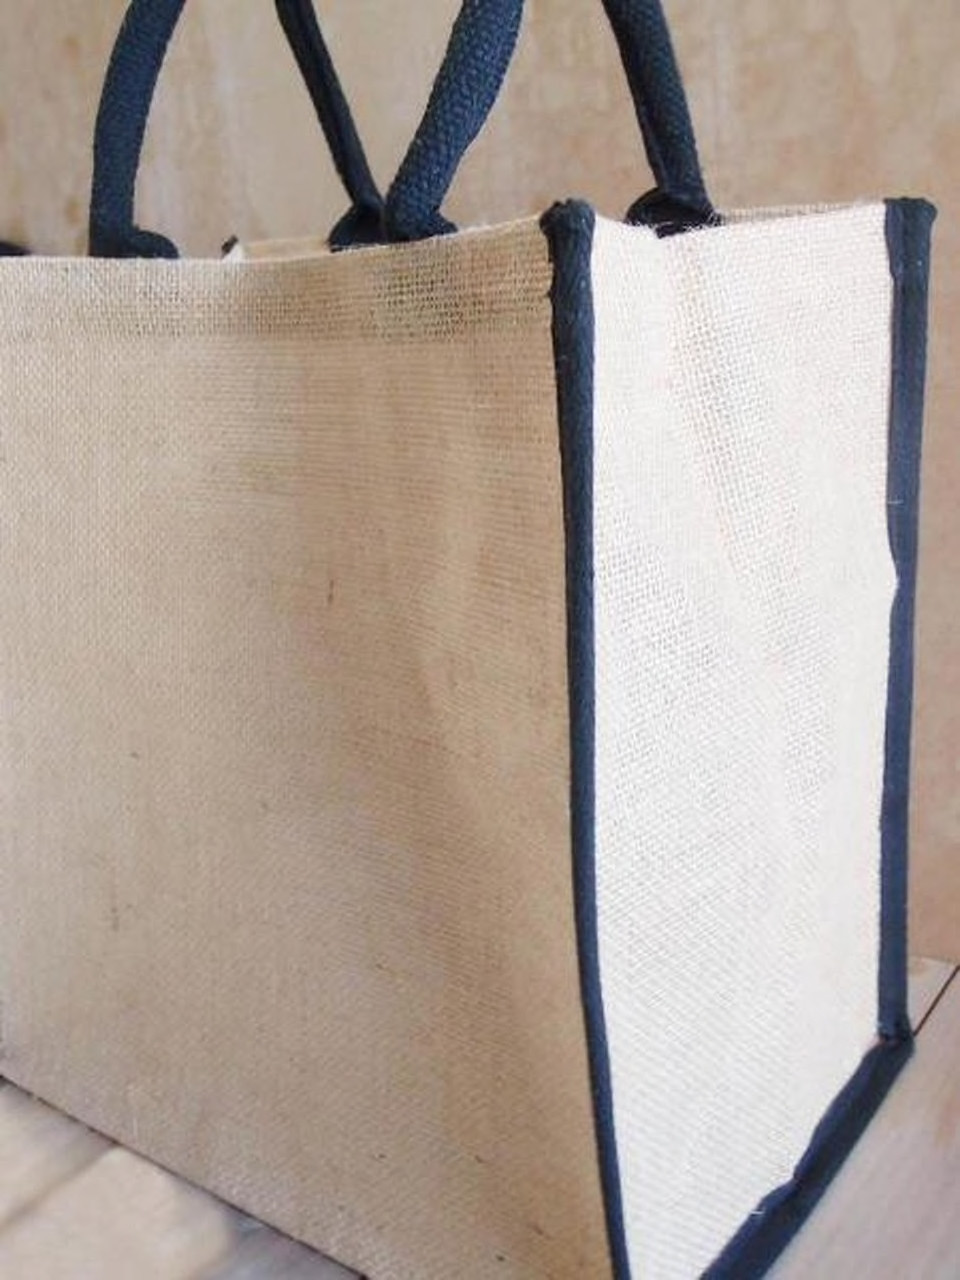 Wholesale Tote Bags, Burlap Tote Bags, Jute Tote with Black Cotton Trim 12 x 12 x 7 3/4 inches, B875-79 | Packaging Decor